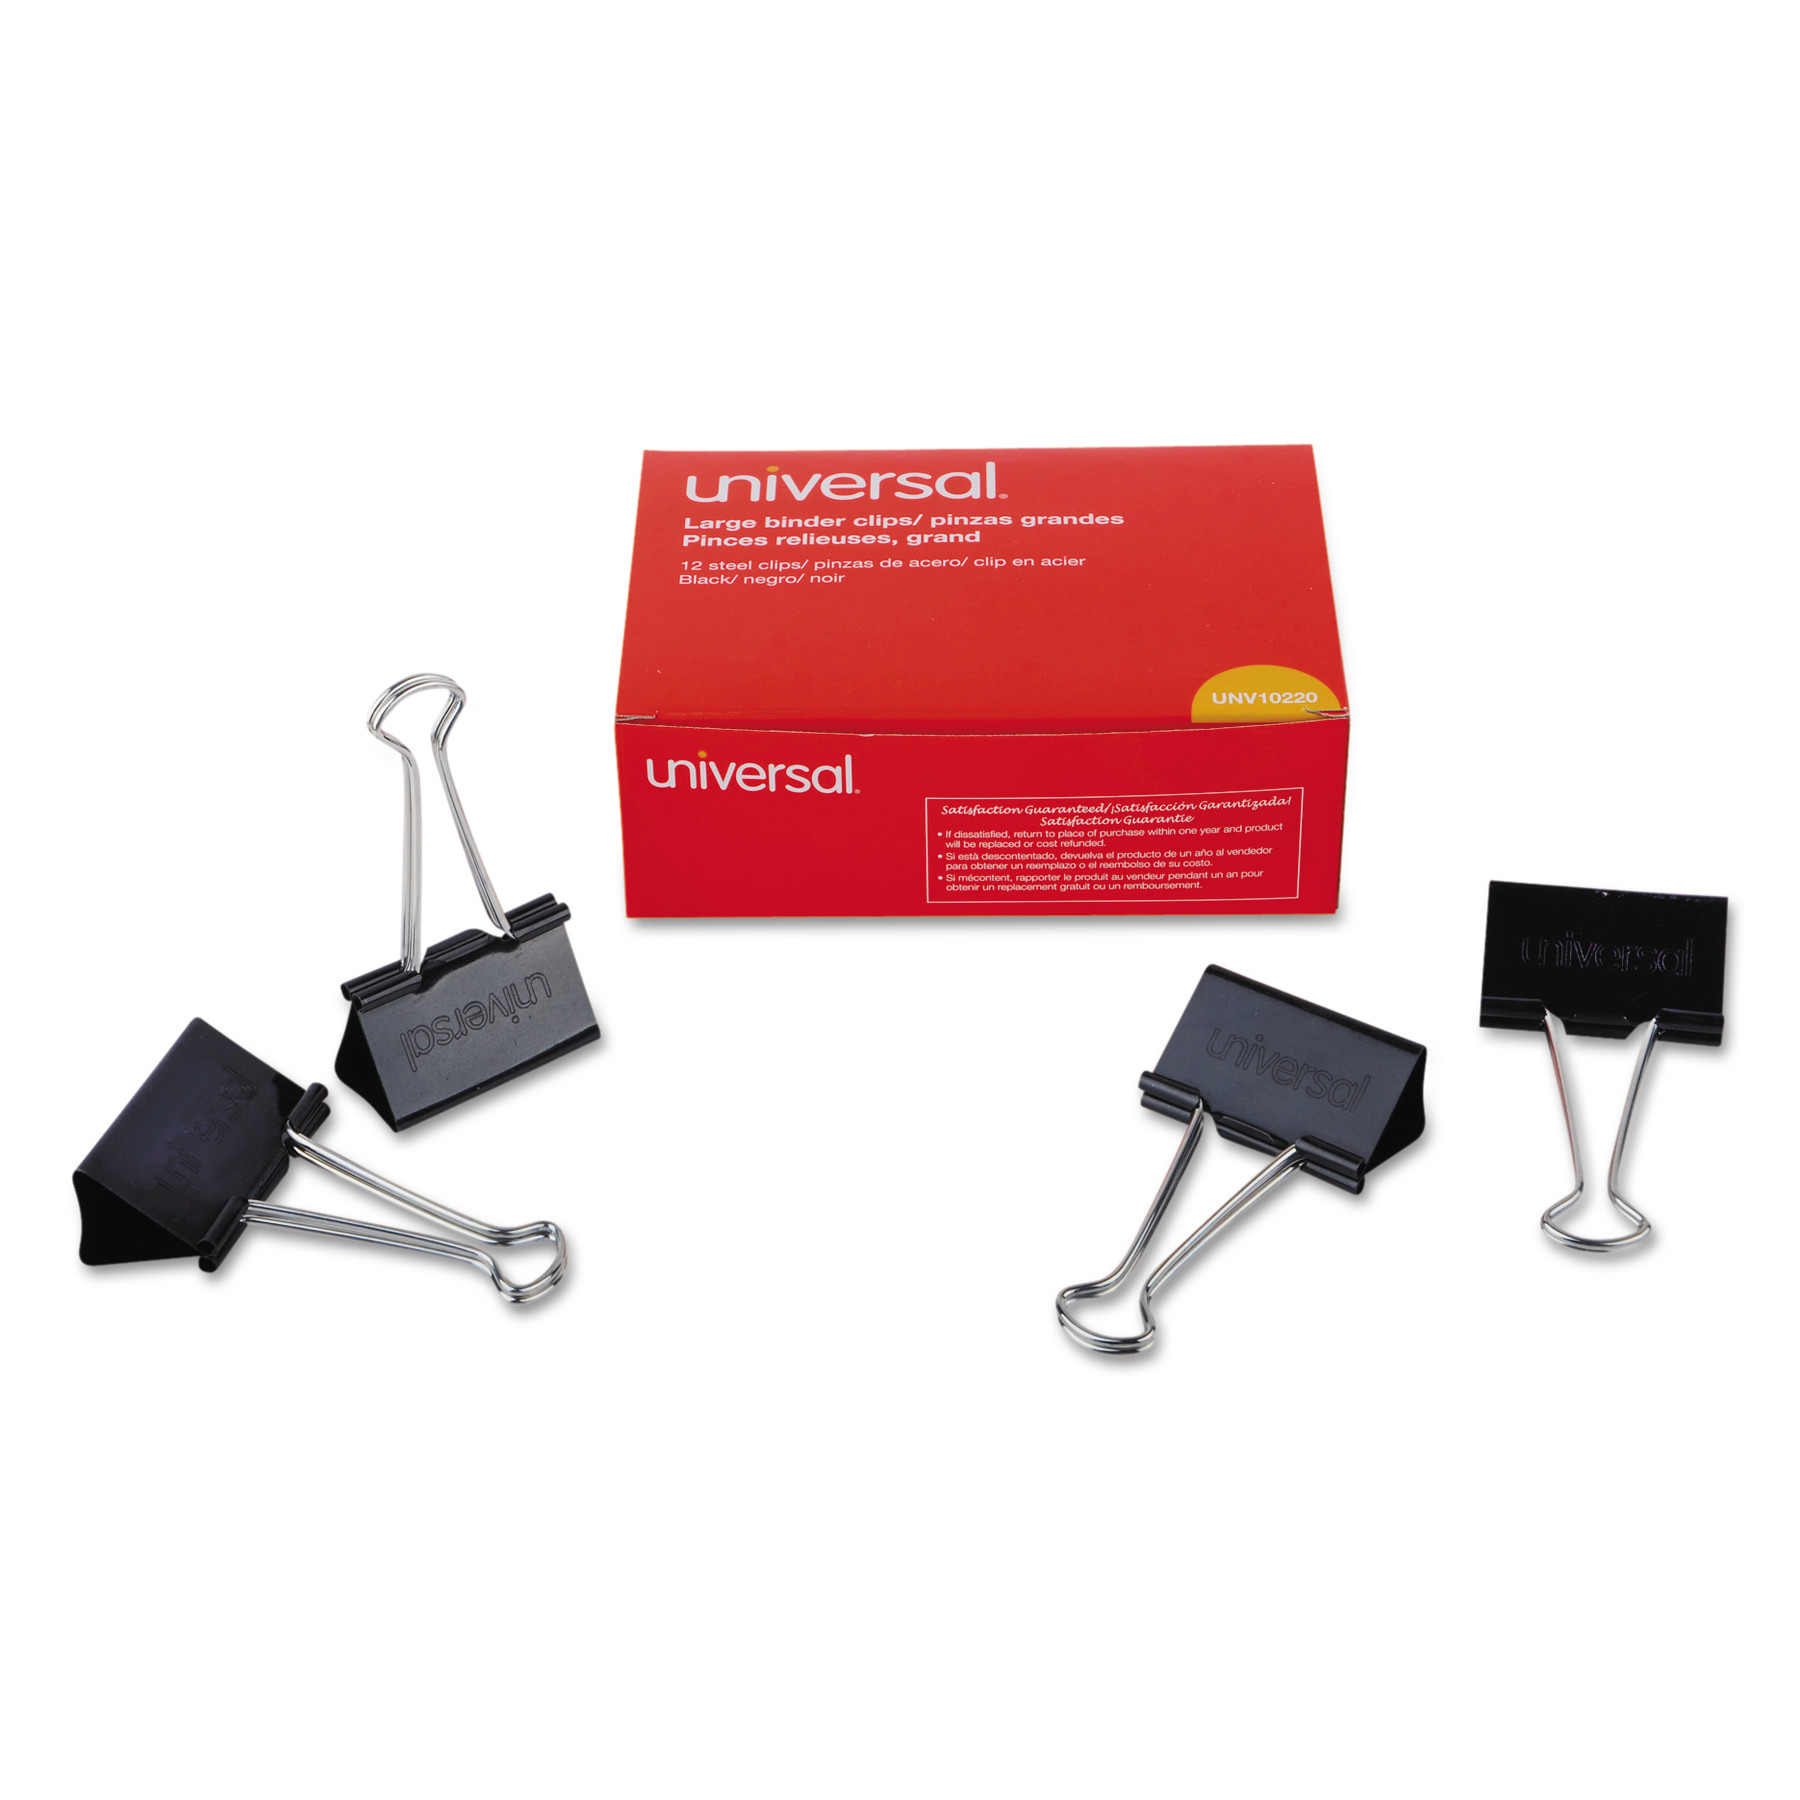 "Universal Large Binder Clips, 1"" Capacity, 2"" Wide, Black"